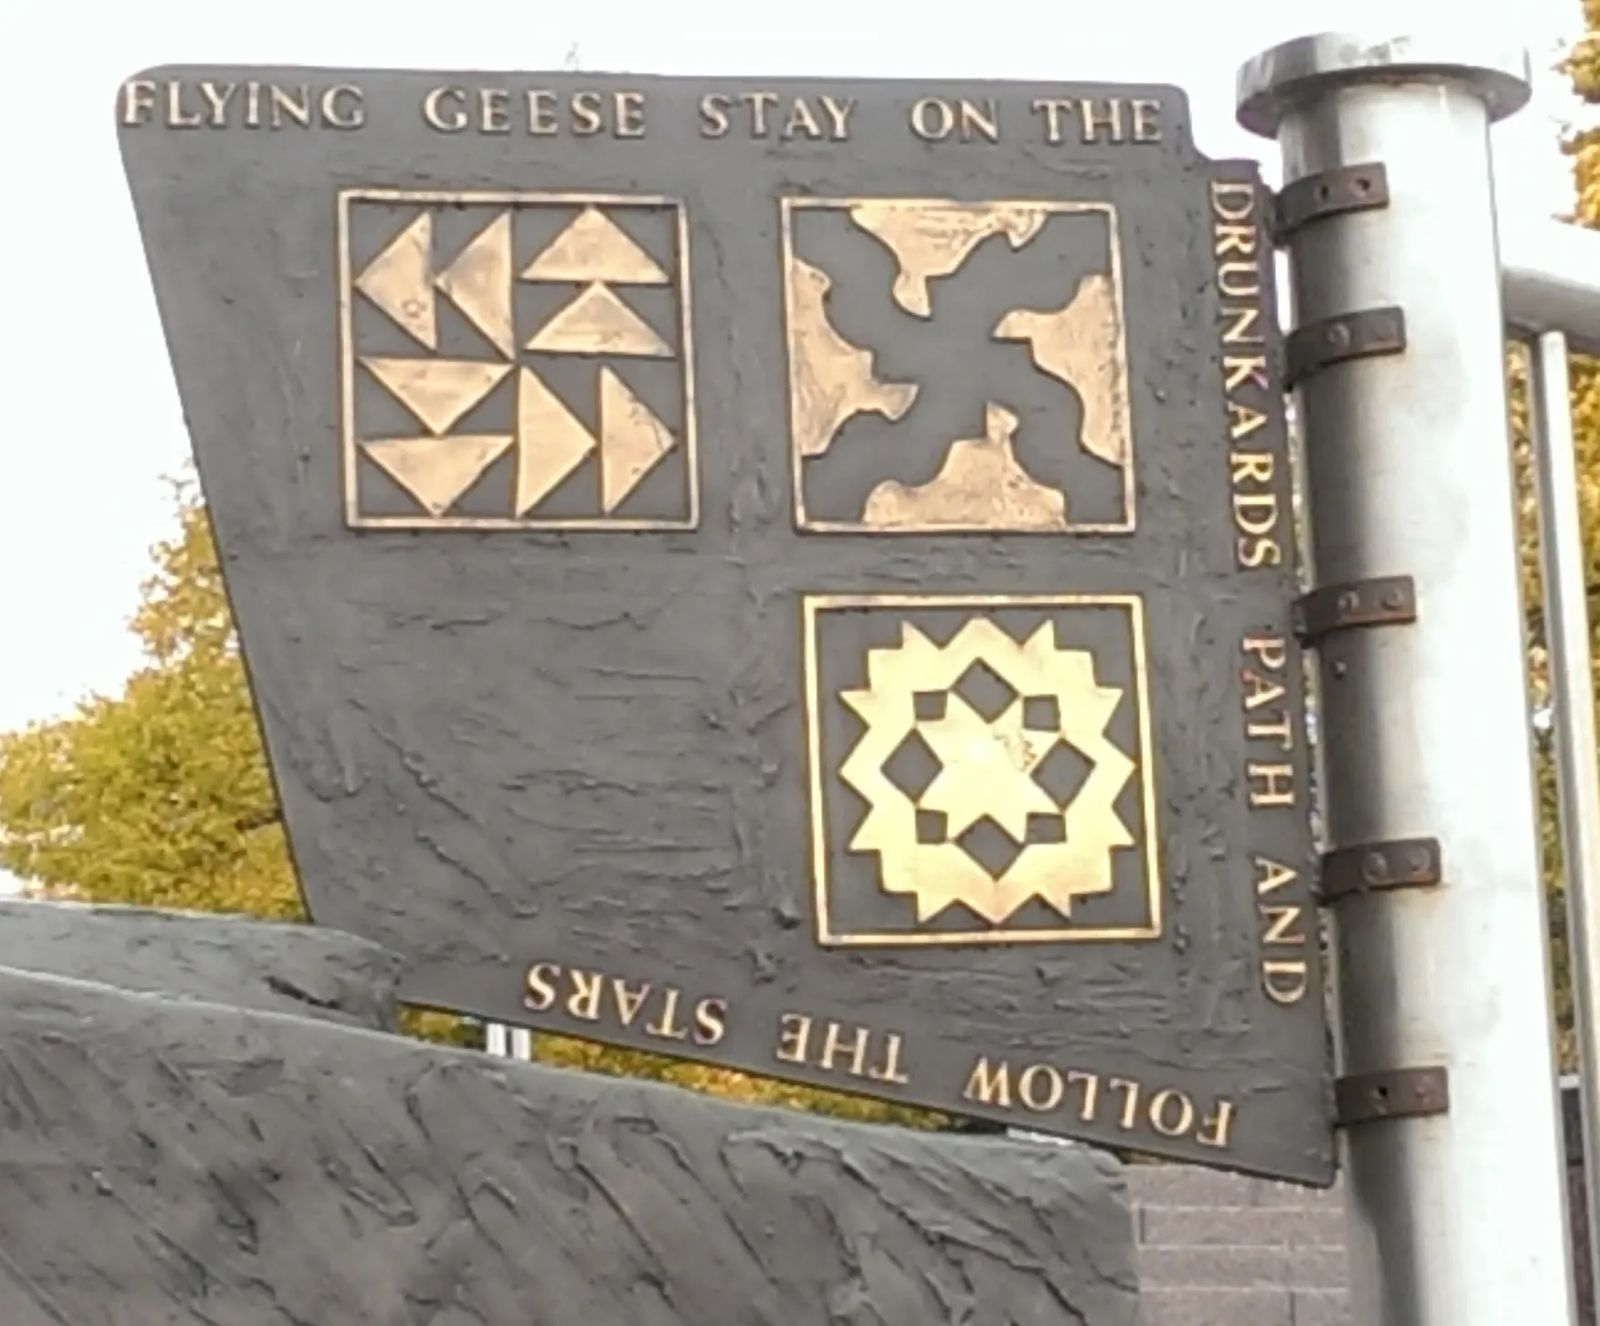 Photo of quilt code patterns from a statue in Detroit, Michigan